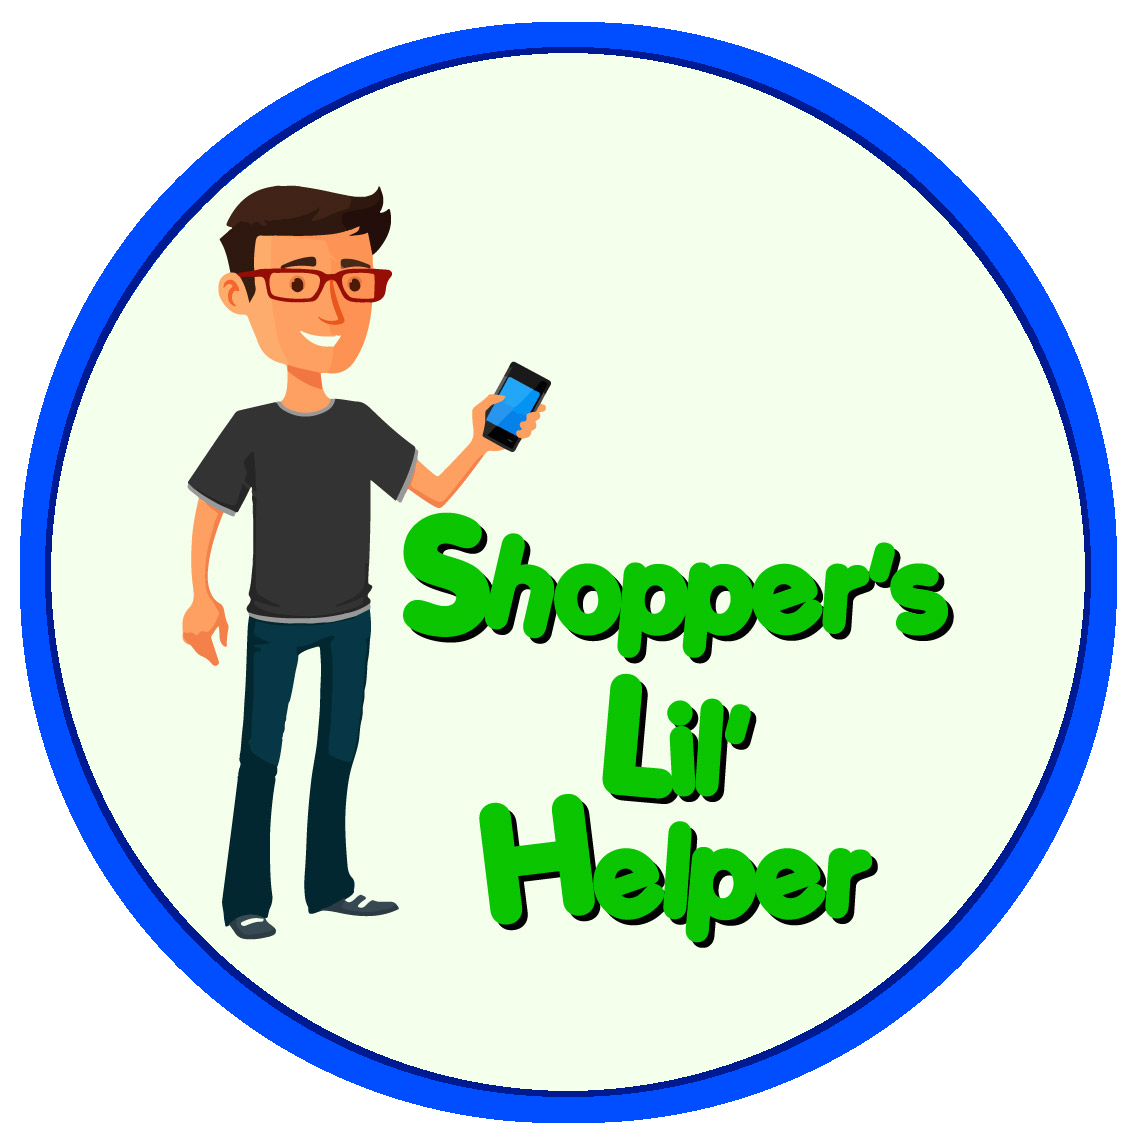 Shopper's Lil' Helper - Add Coupons from Your Favorite Sites and Social Media, Then Find Even More Deals!